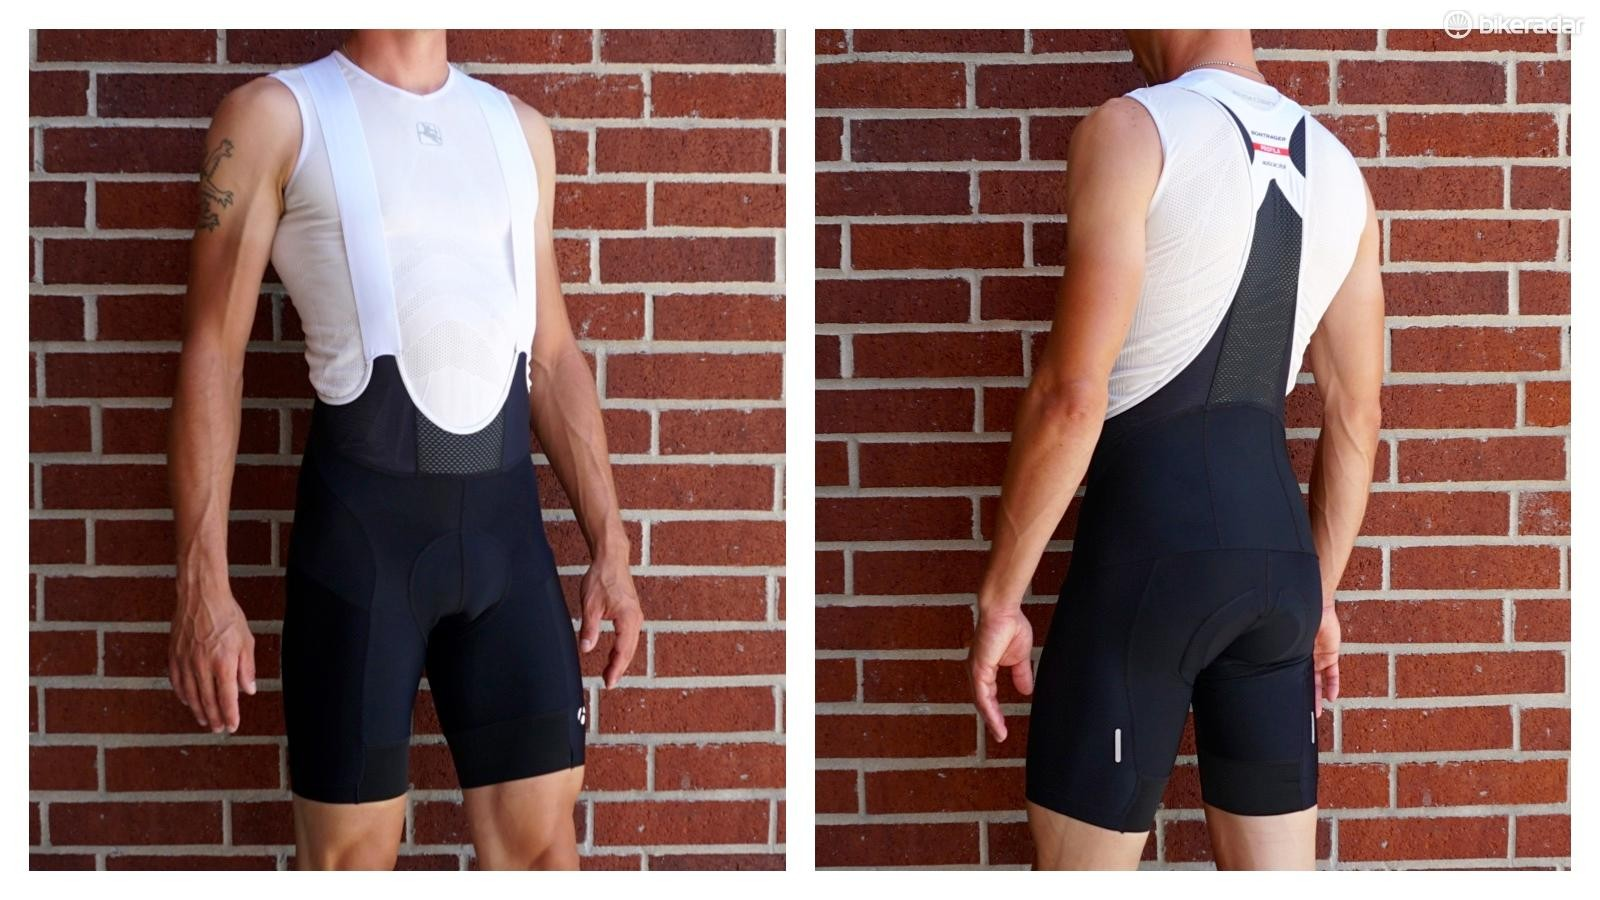 Bontrager Velocis bibs have a seam down the center of the thigh that was difficult to ignore